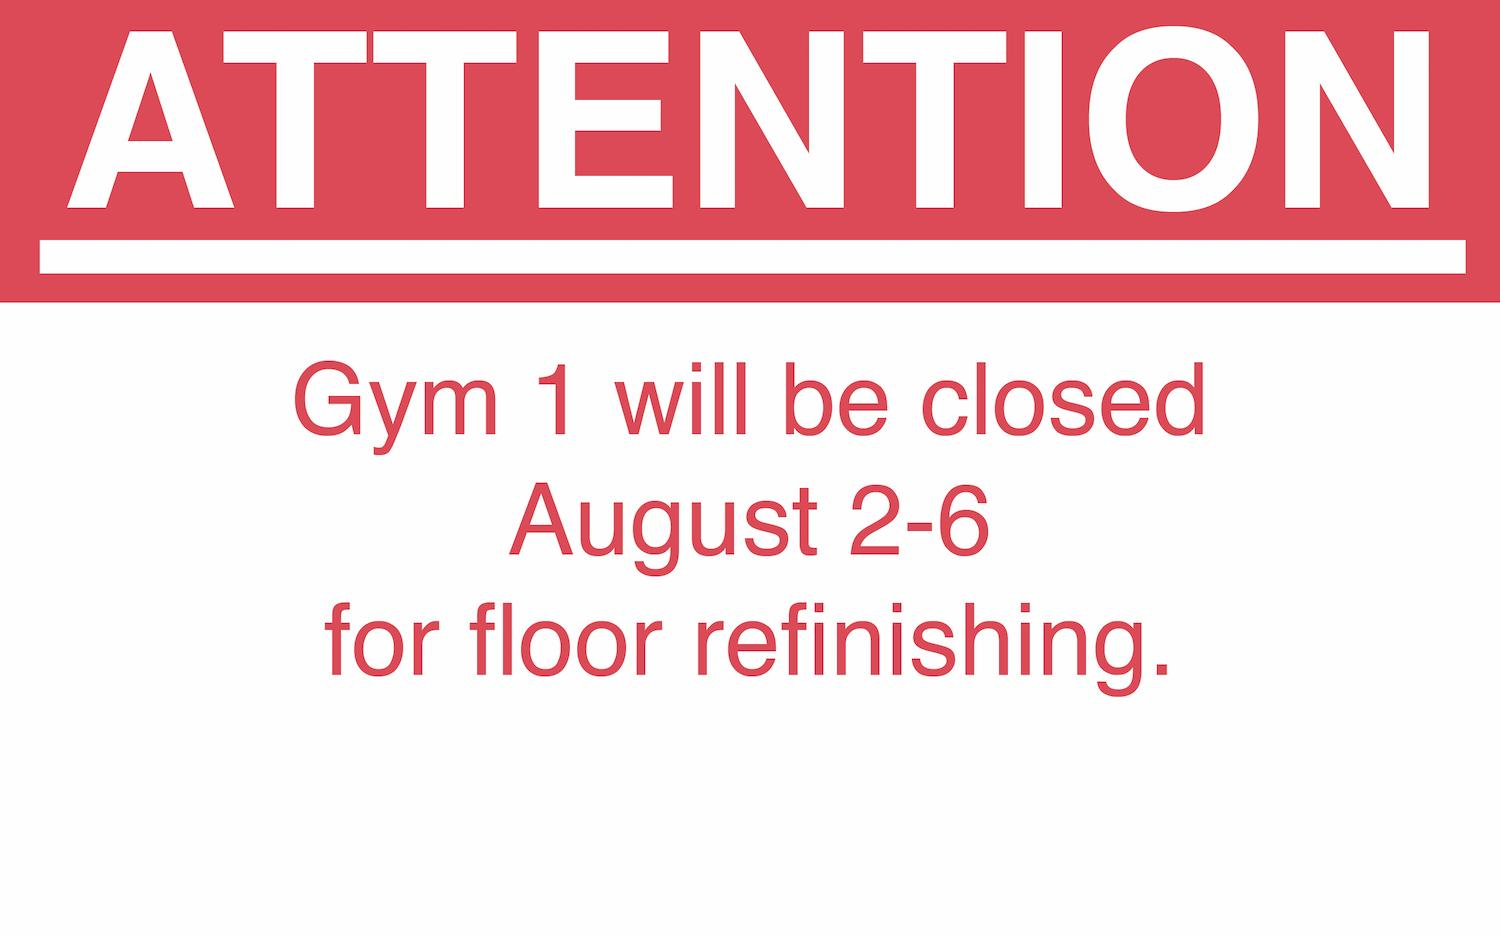 Gyms 2-4 will be open during this time.